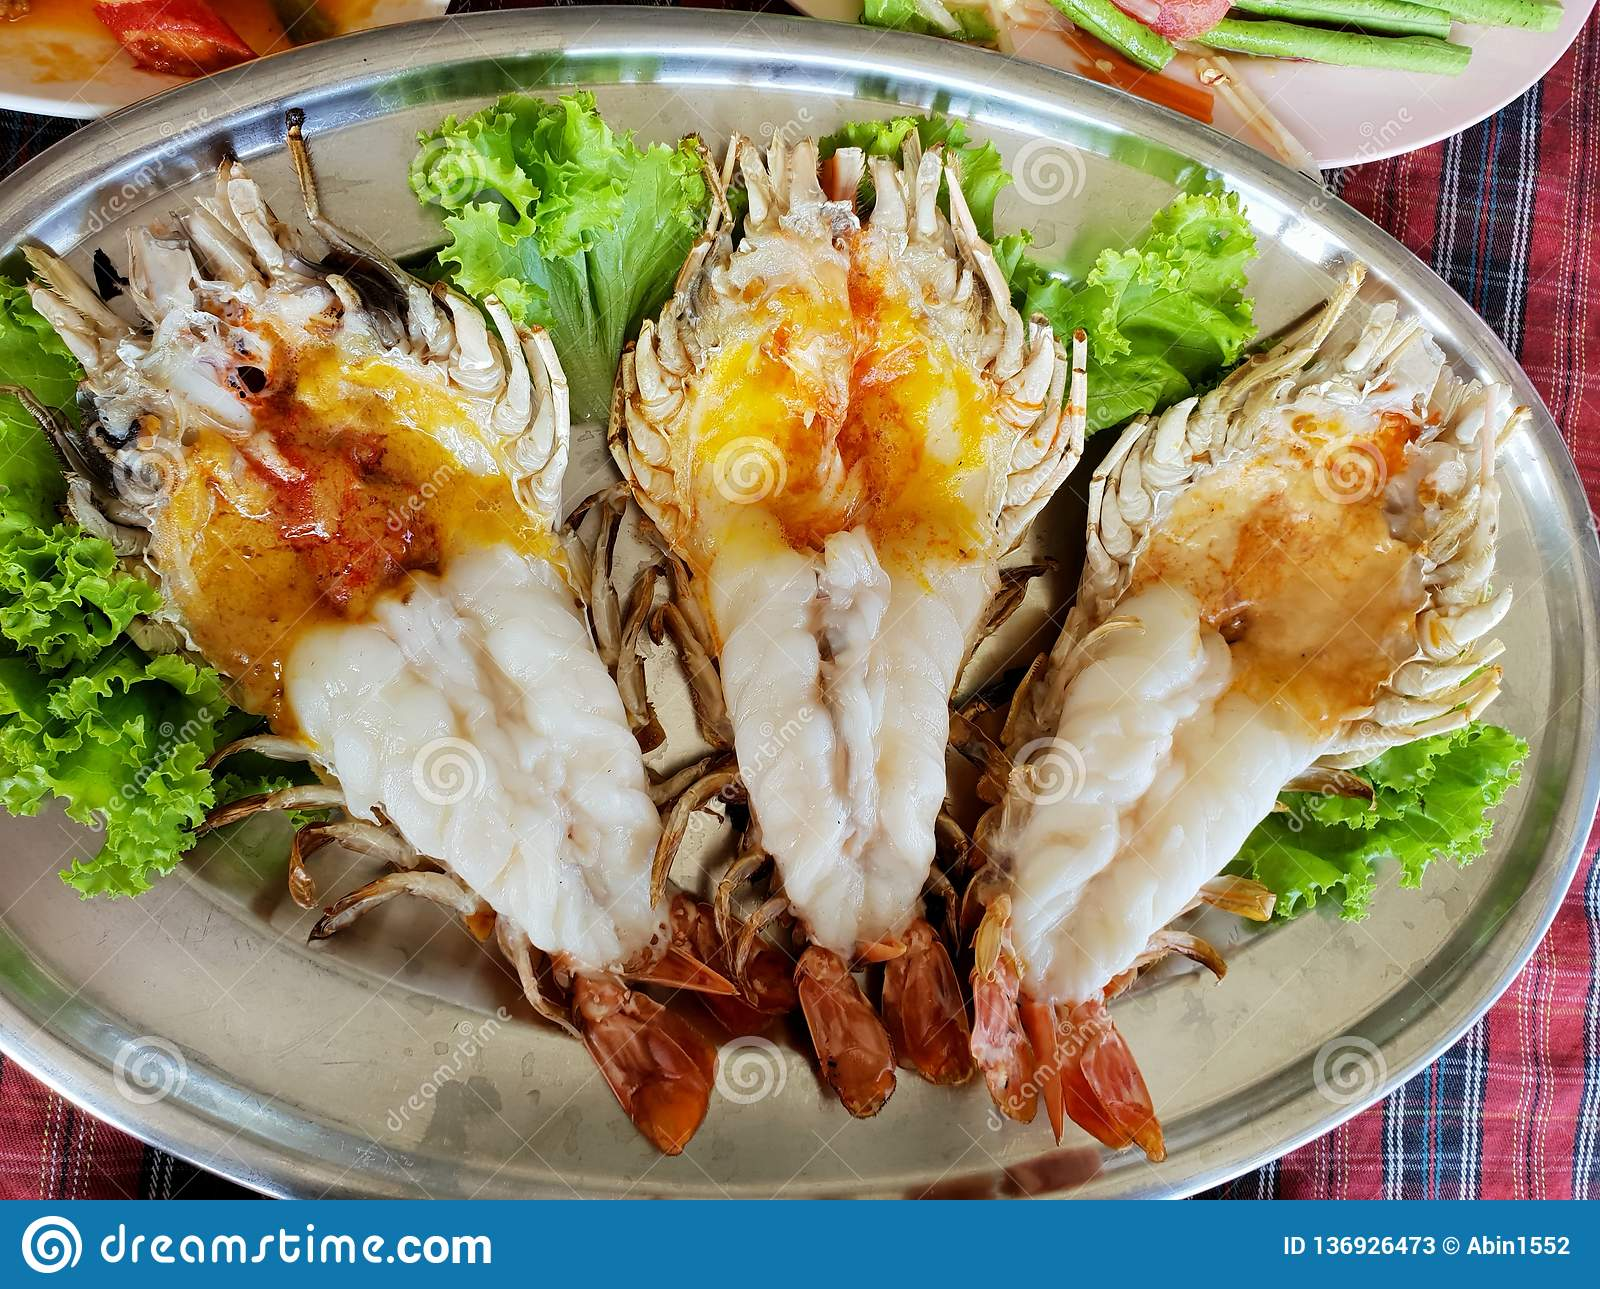 Top view of barbecued shrimp on tray in restaurant, Grilled giant river prawn as a background.